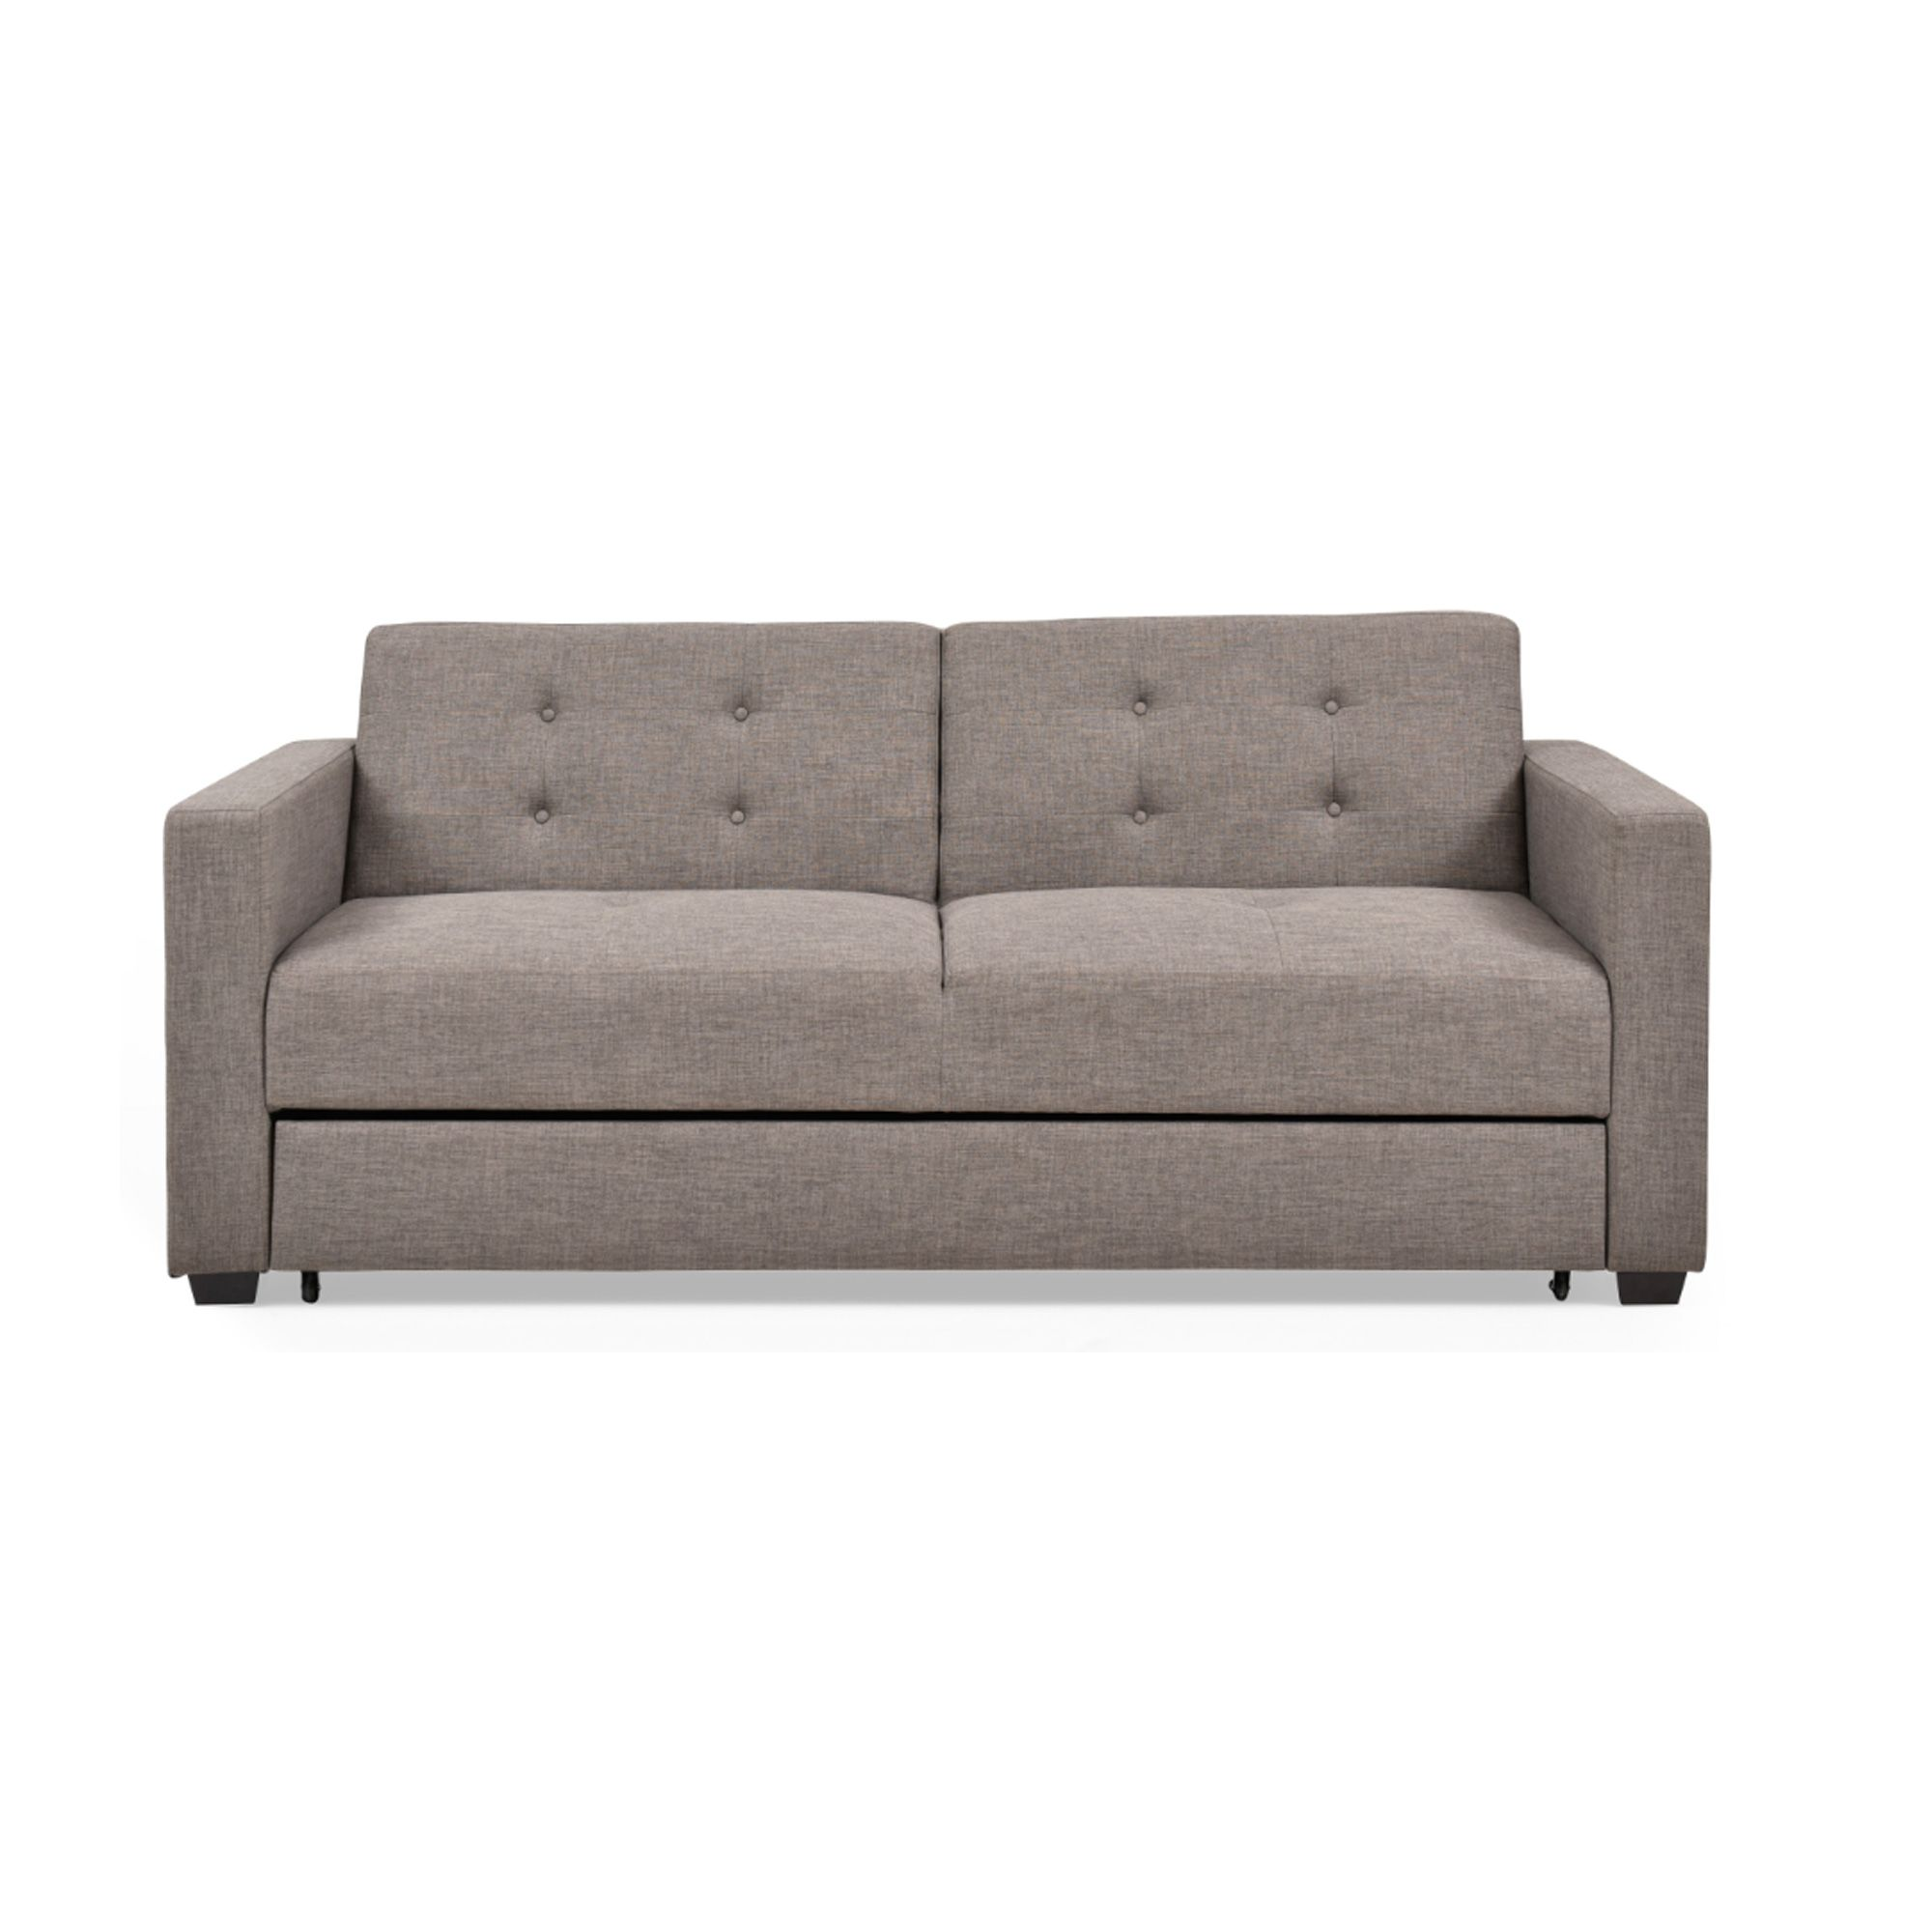 Alannah Small Double Sofa Bed With Storage Drawer Grey